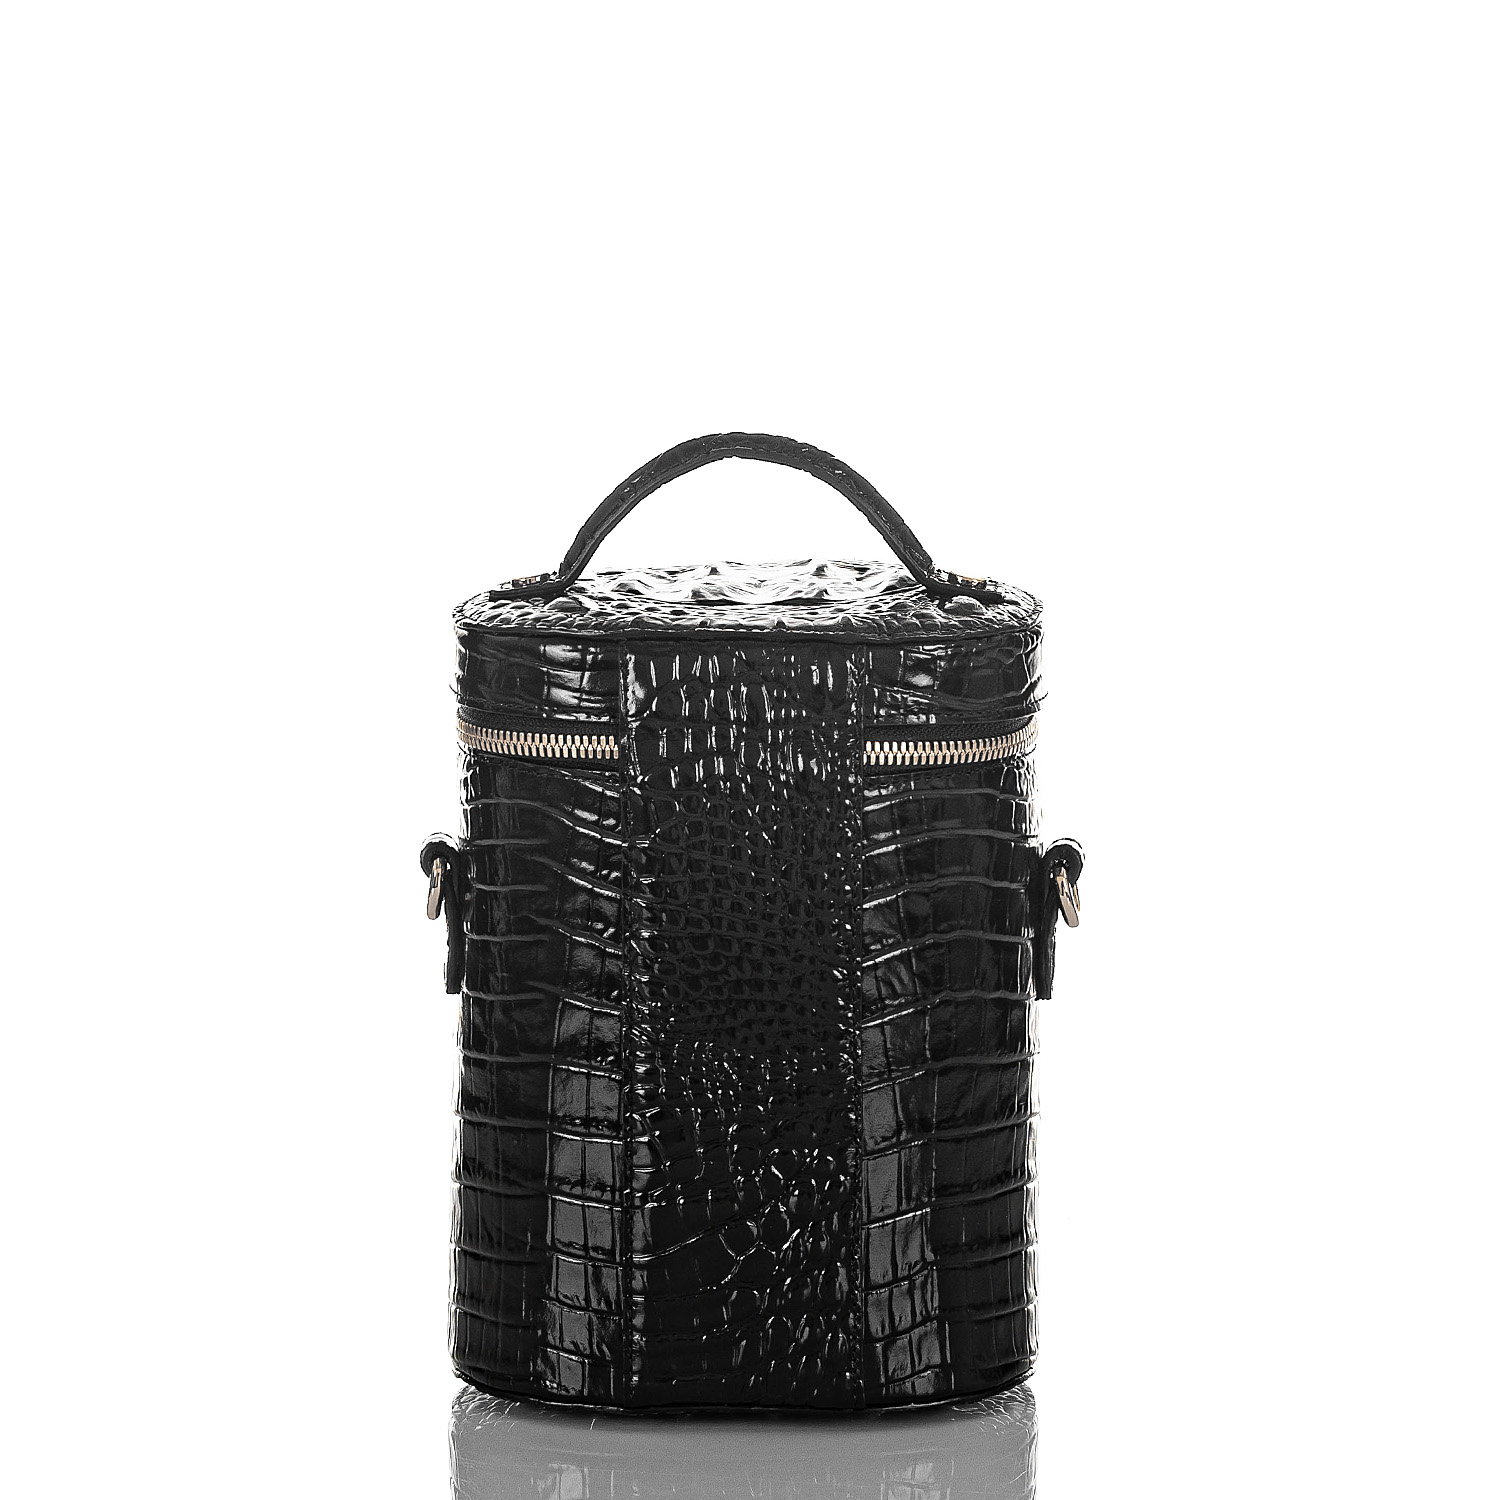 Brynn Barrel Bag Black Melbourne